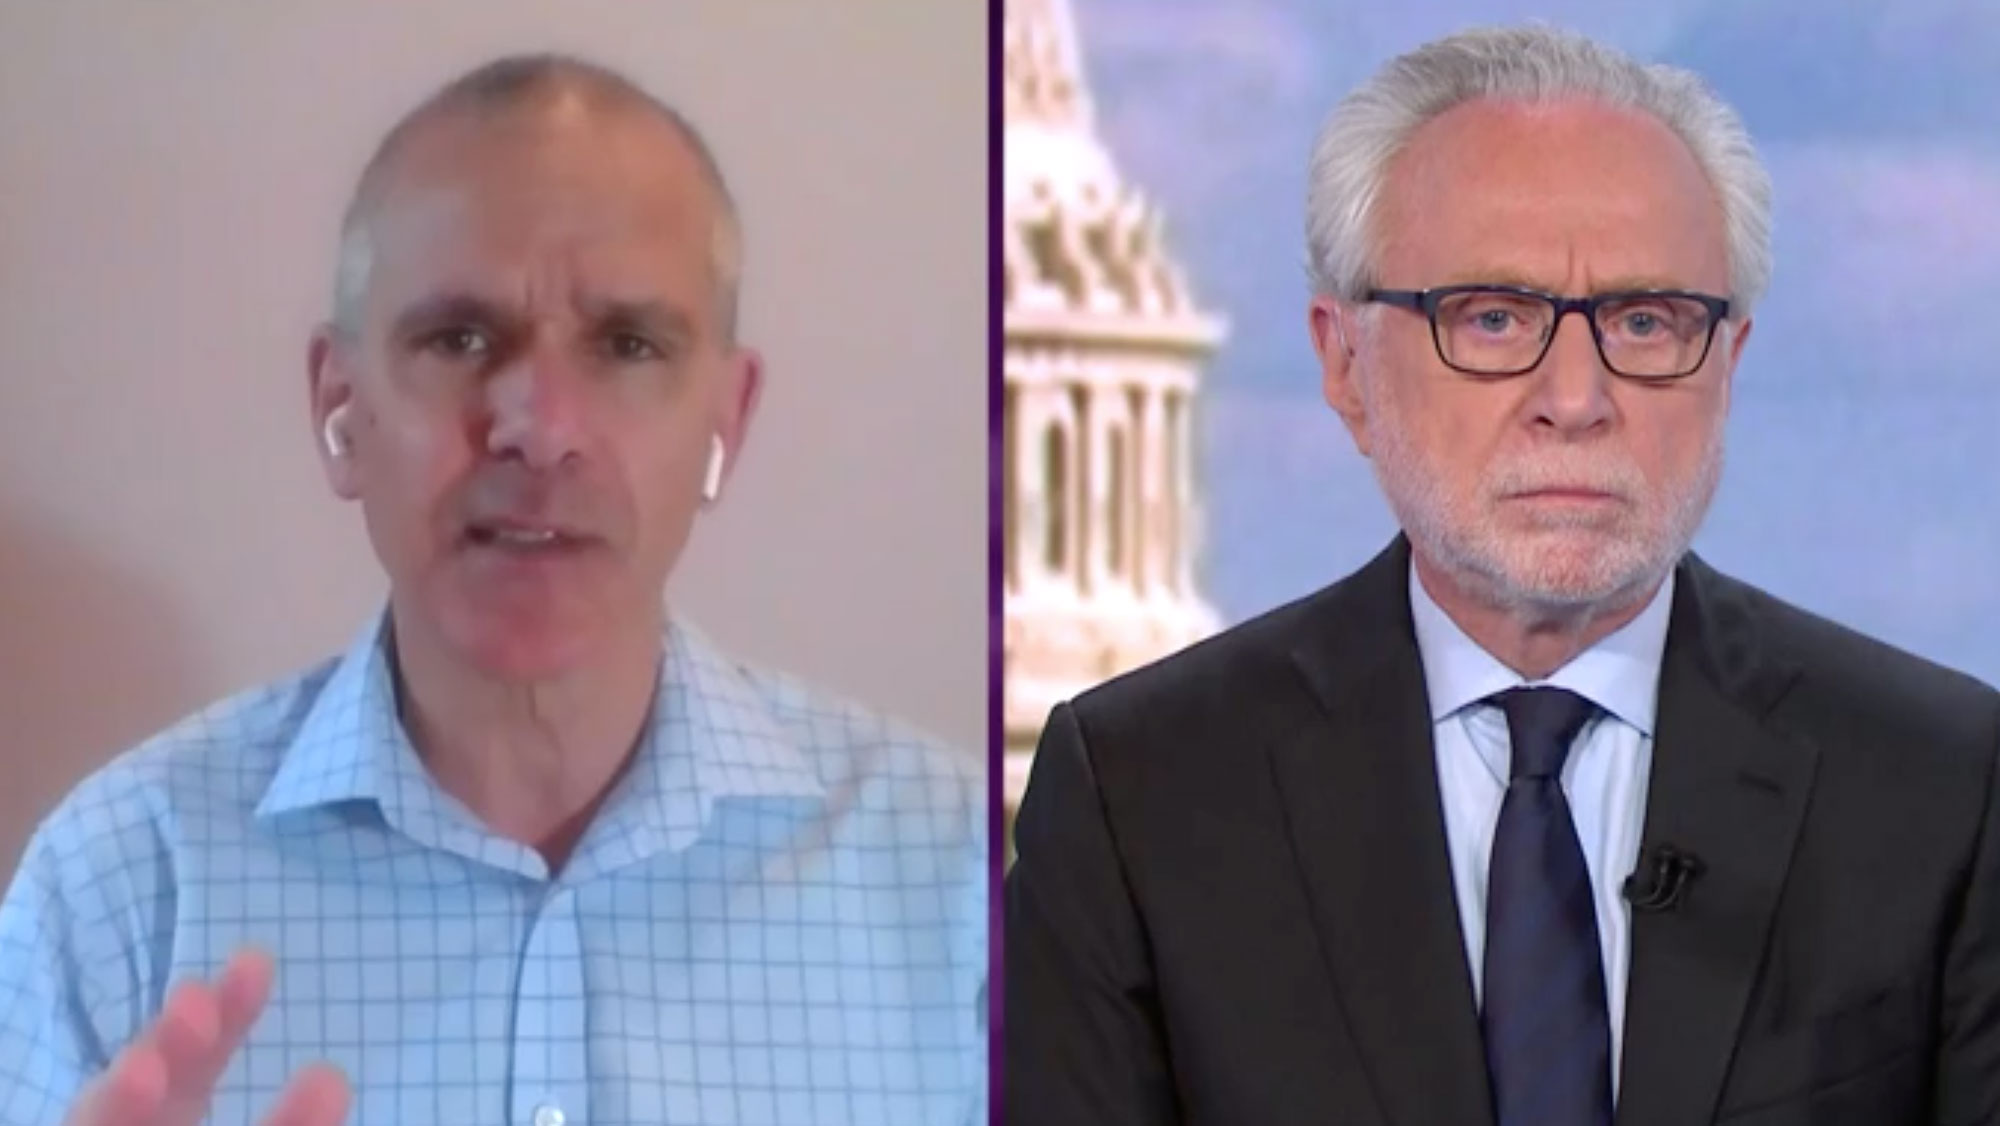 Dr. Christopher Murray and CNN's Wolf Blitzer.